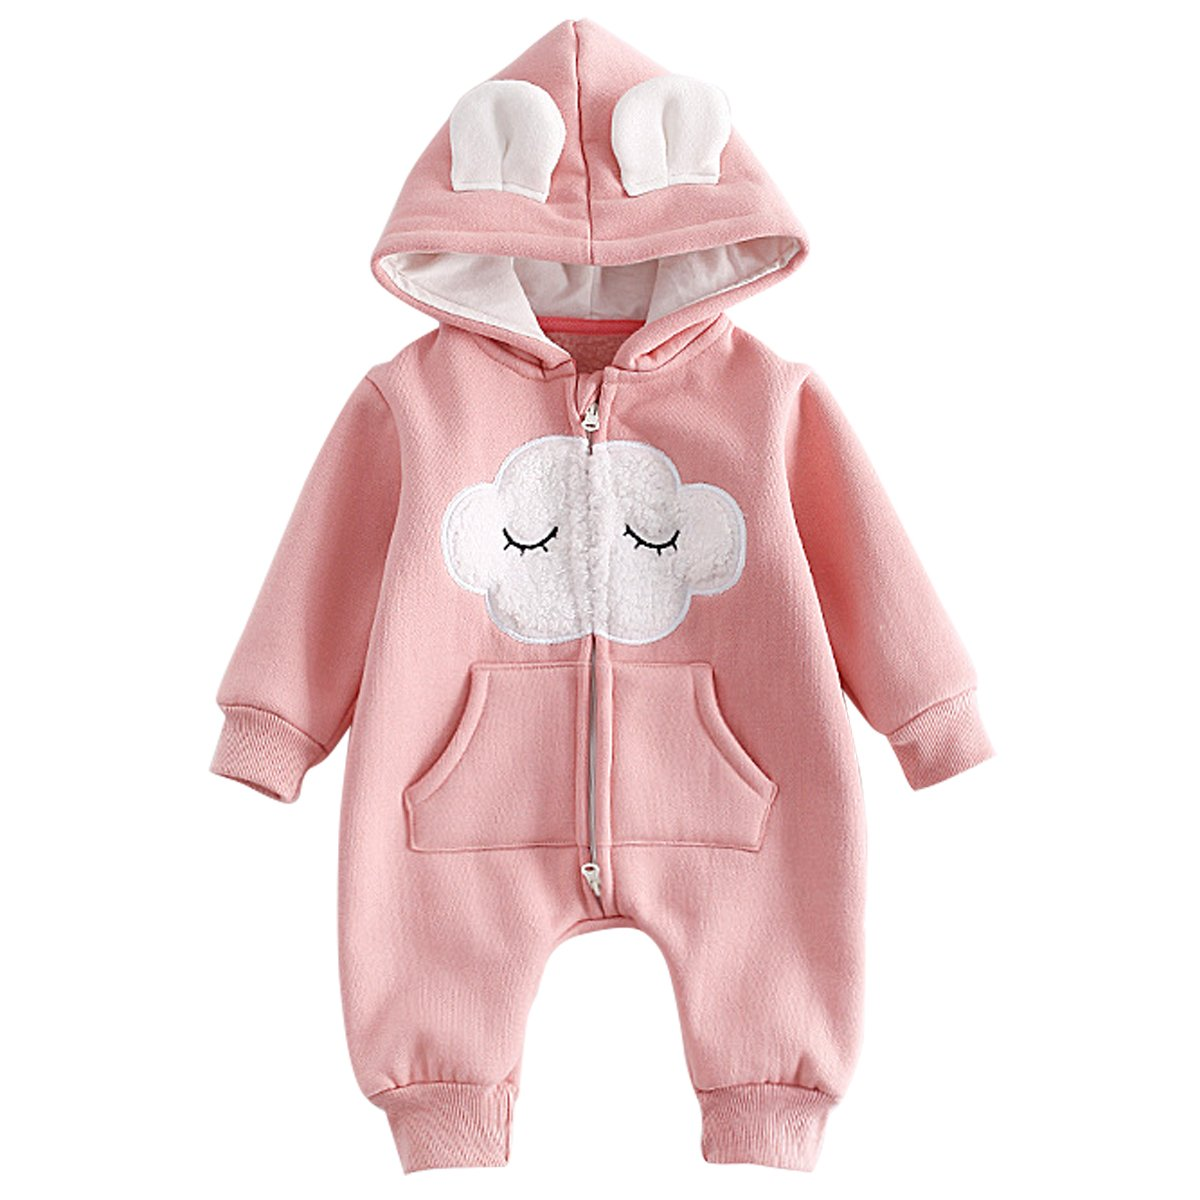 Bebone Baby Clothes Girls Boys Jumpsuit Kids Outwear